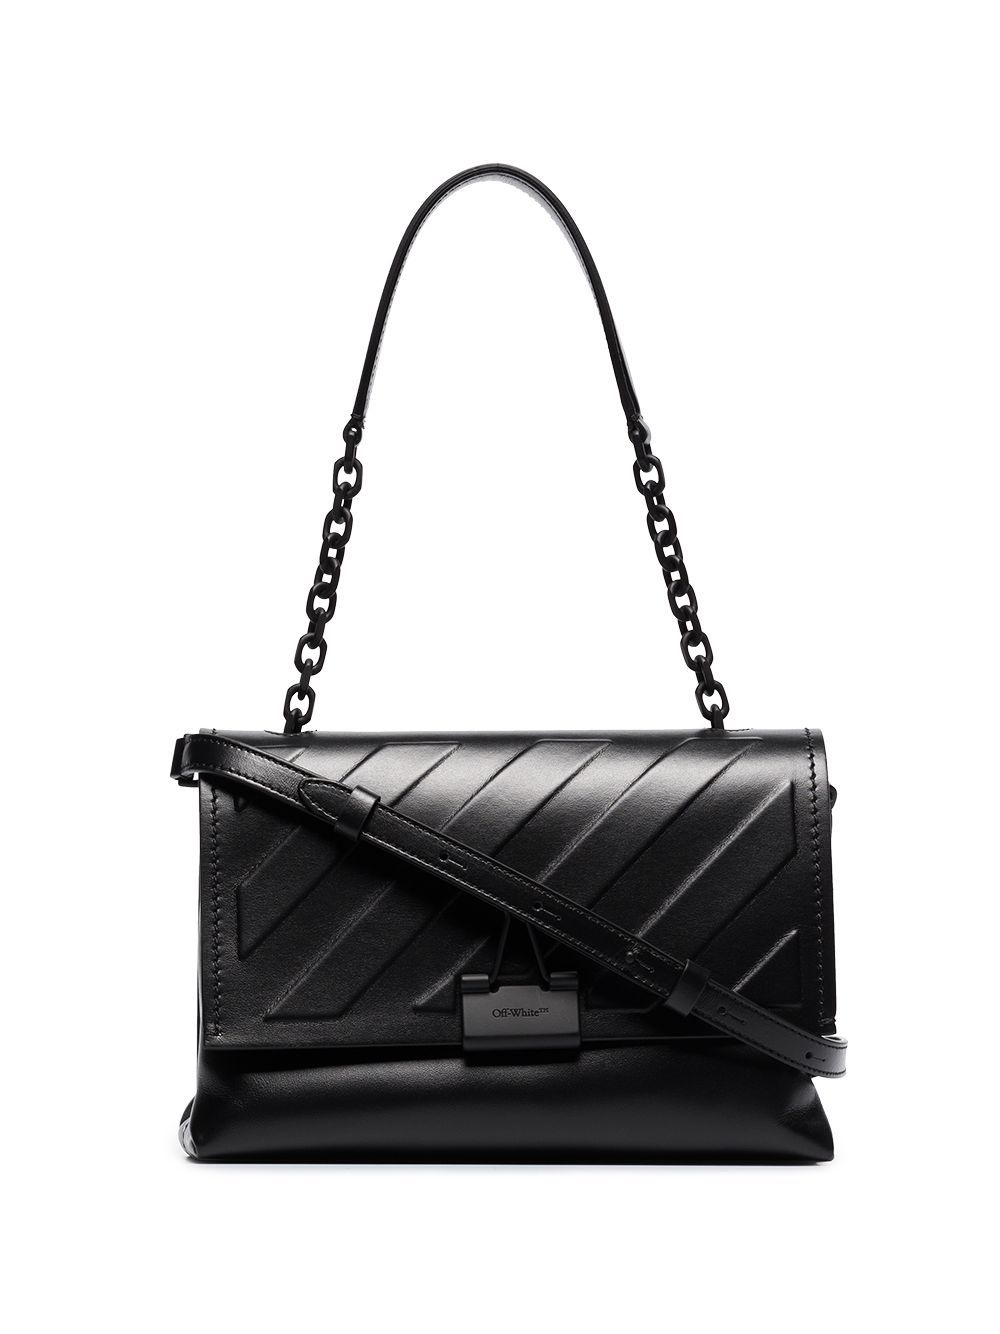 Off-White Leathers OFF-WHITE WOMEN'S BLACK LEATHER SHOULDER BAG